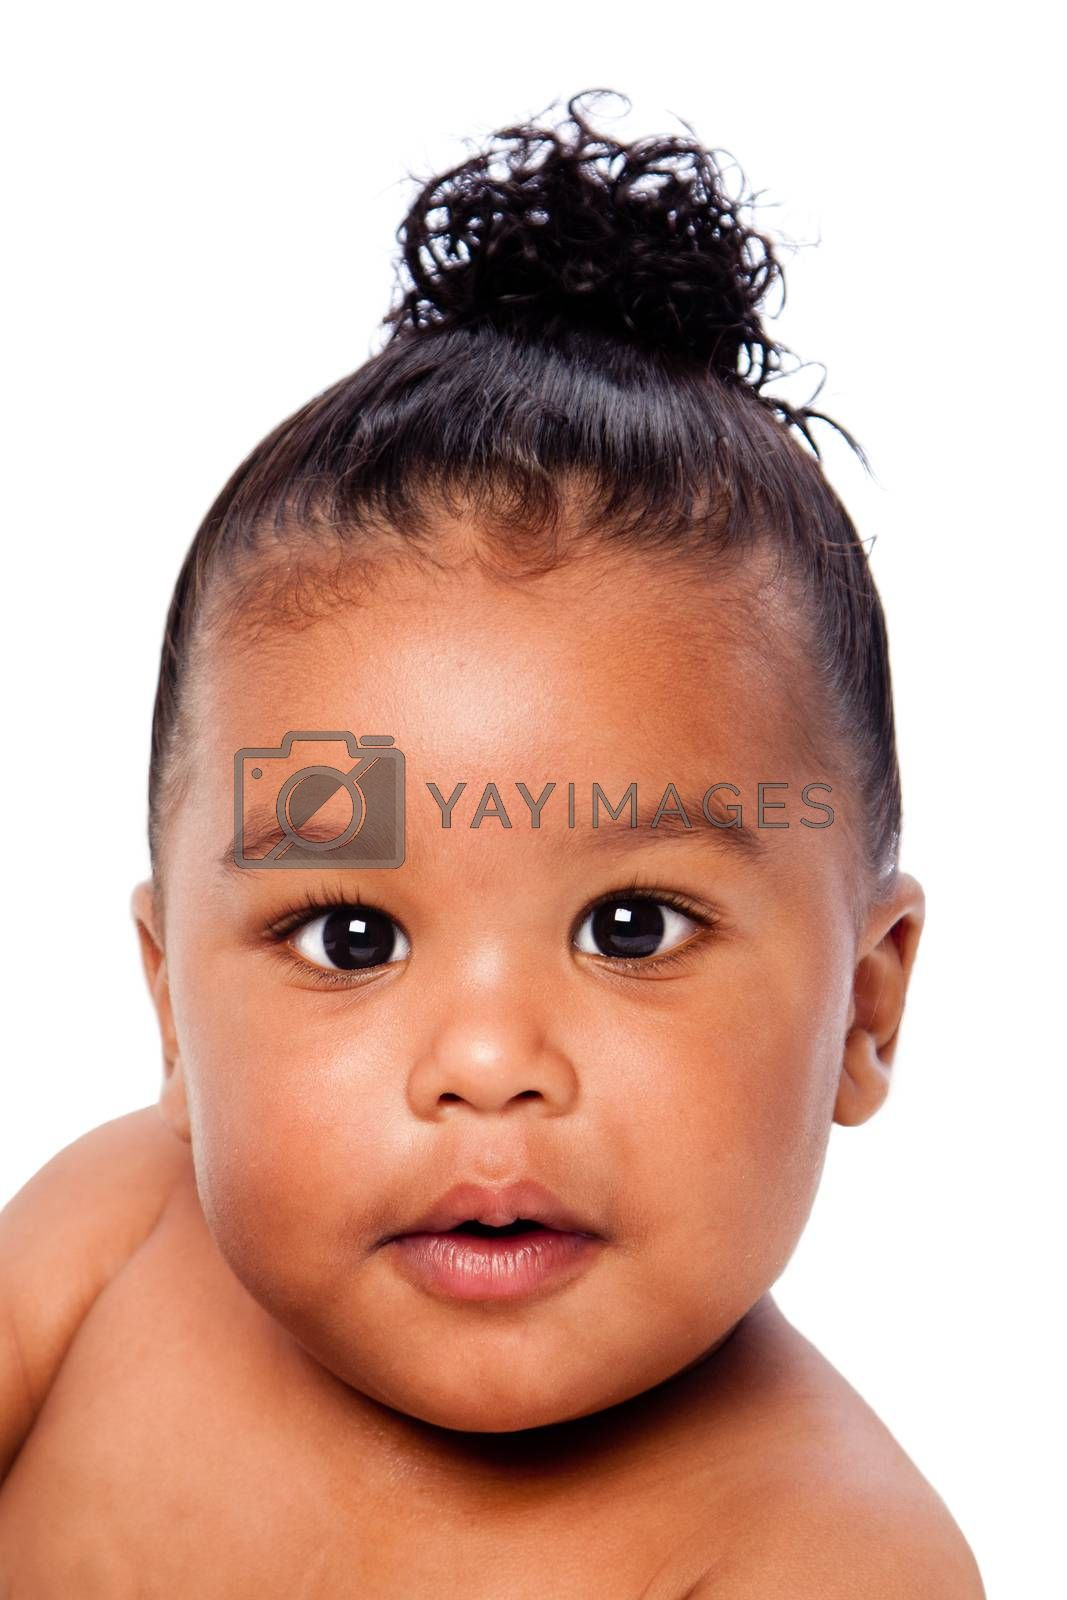 Face of beautiful cute baby toddler with hair in bun.